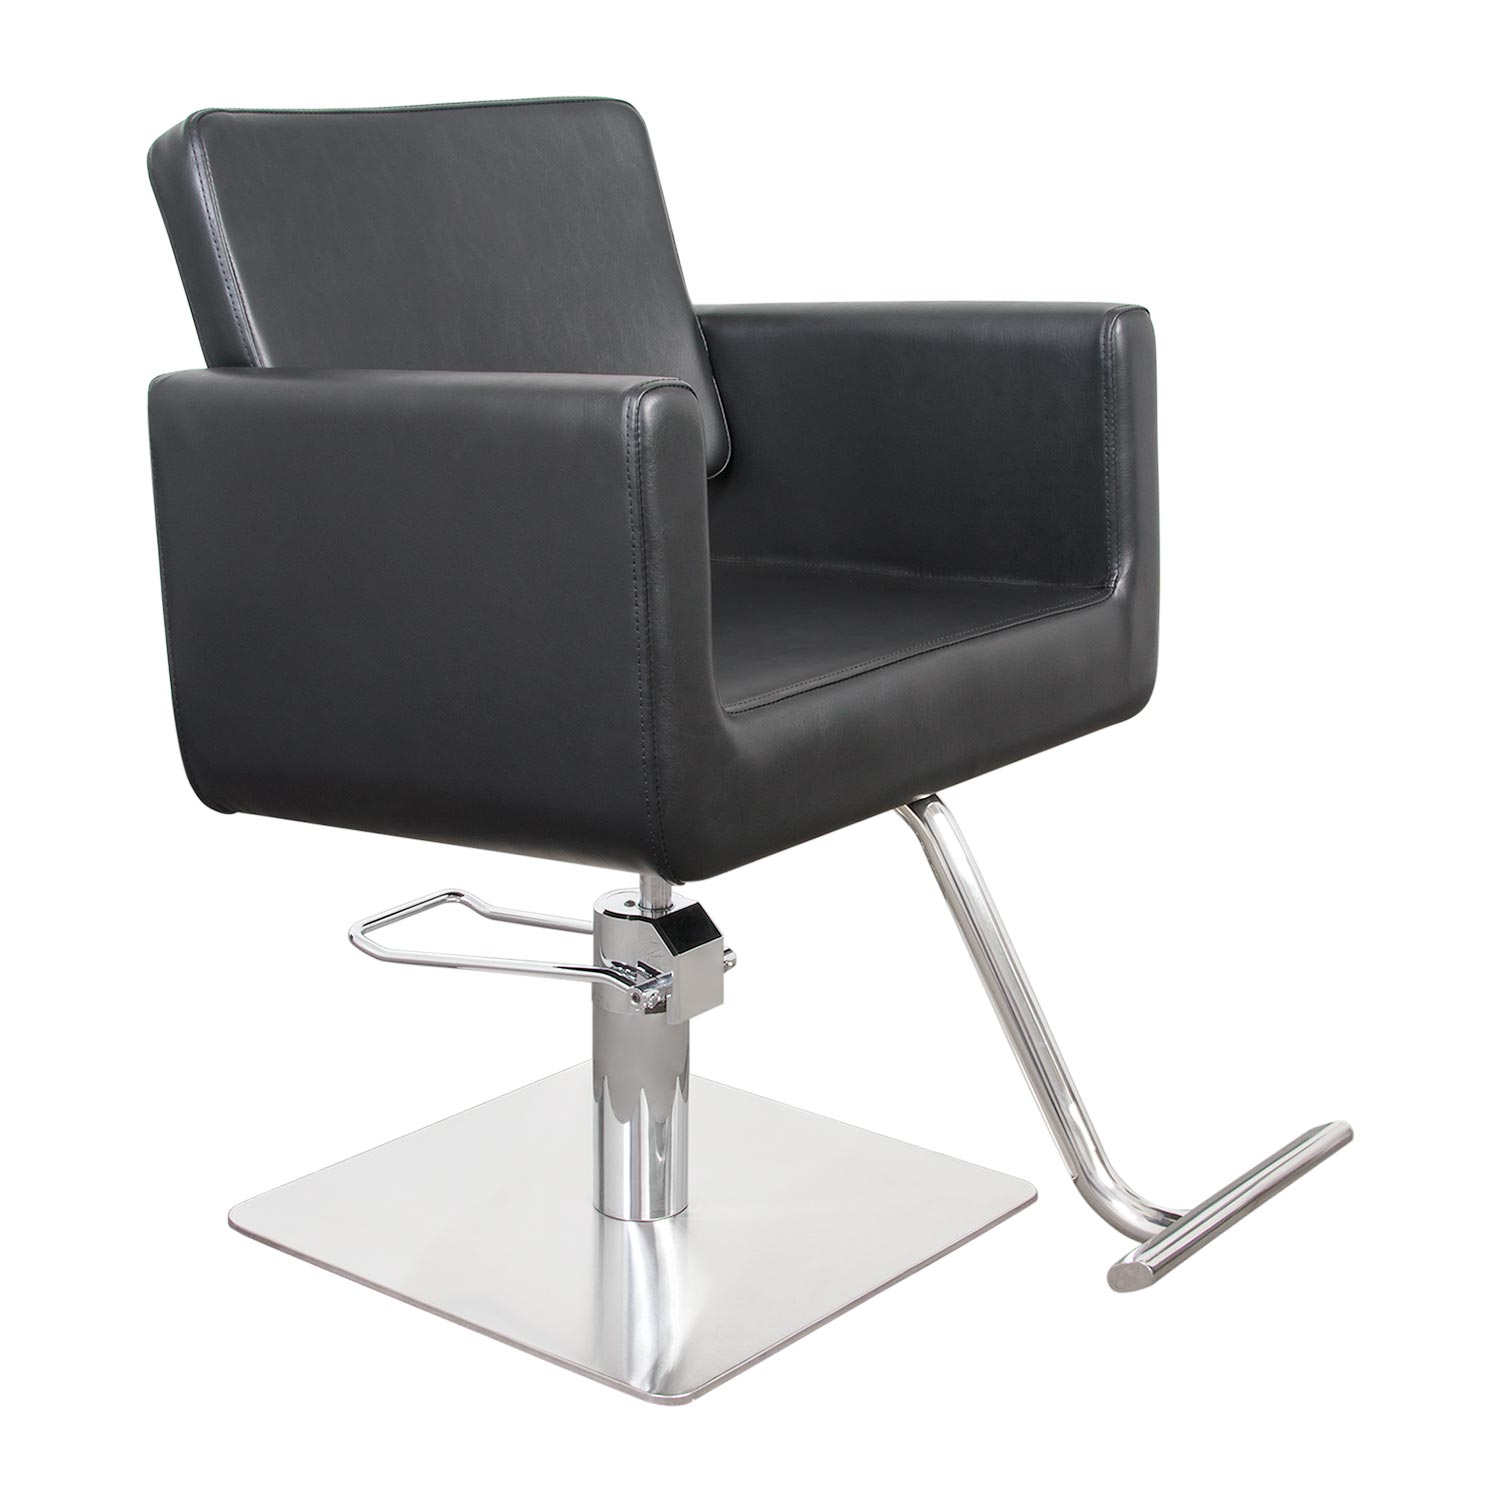 Maxton Square Stylist Chair alternative product image 2